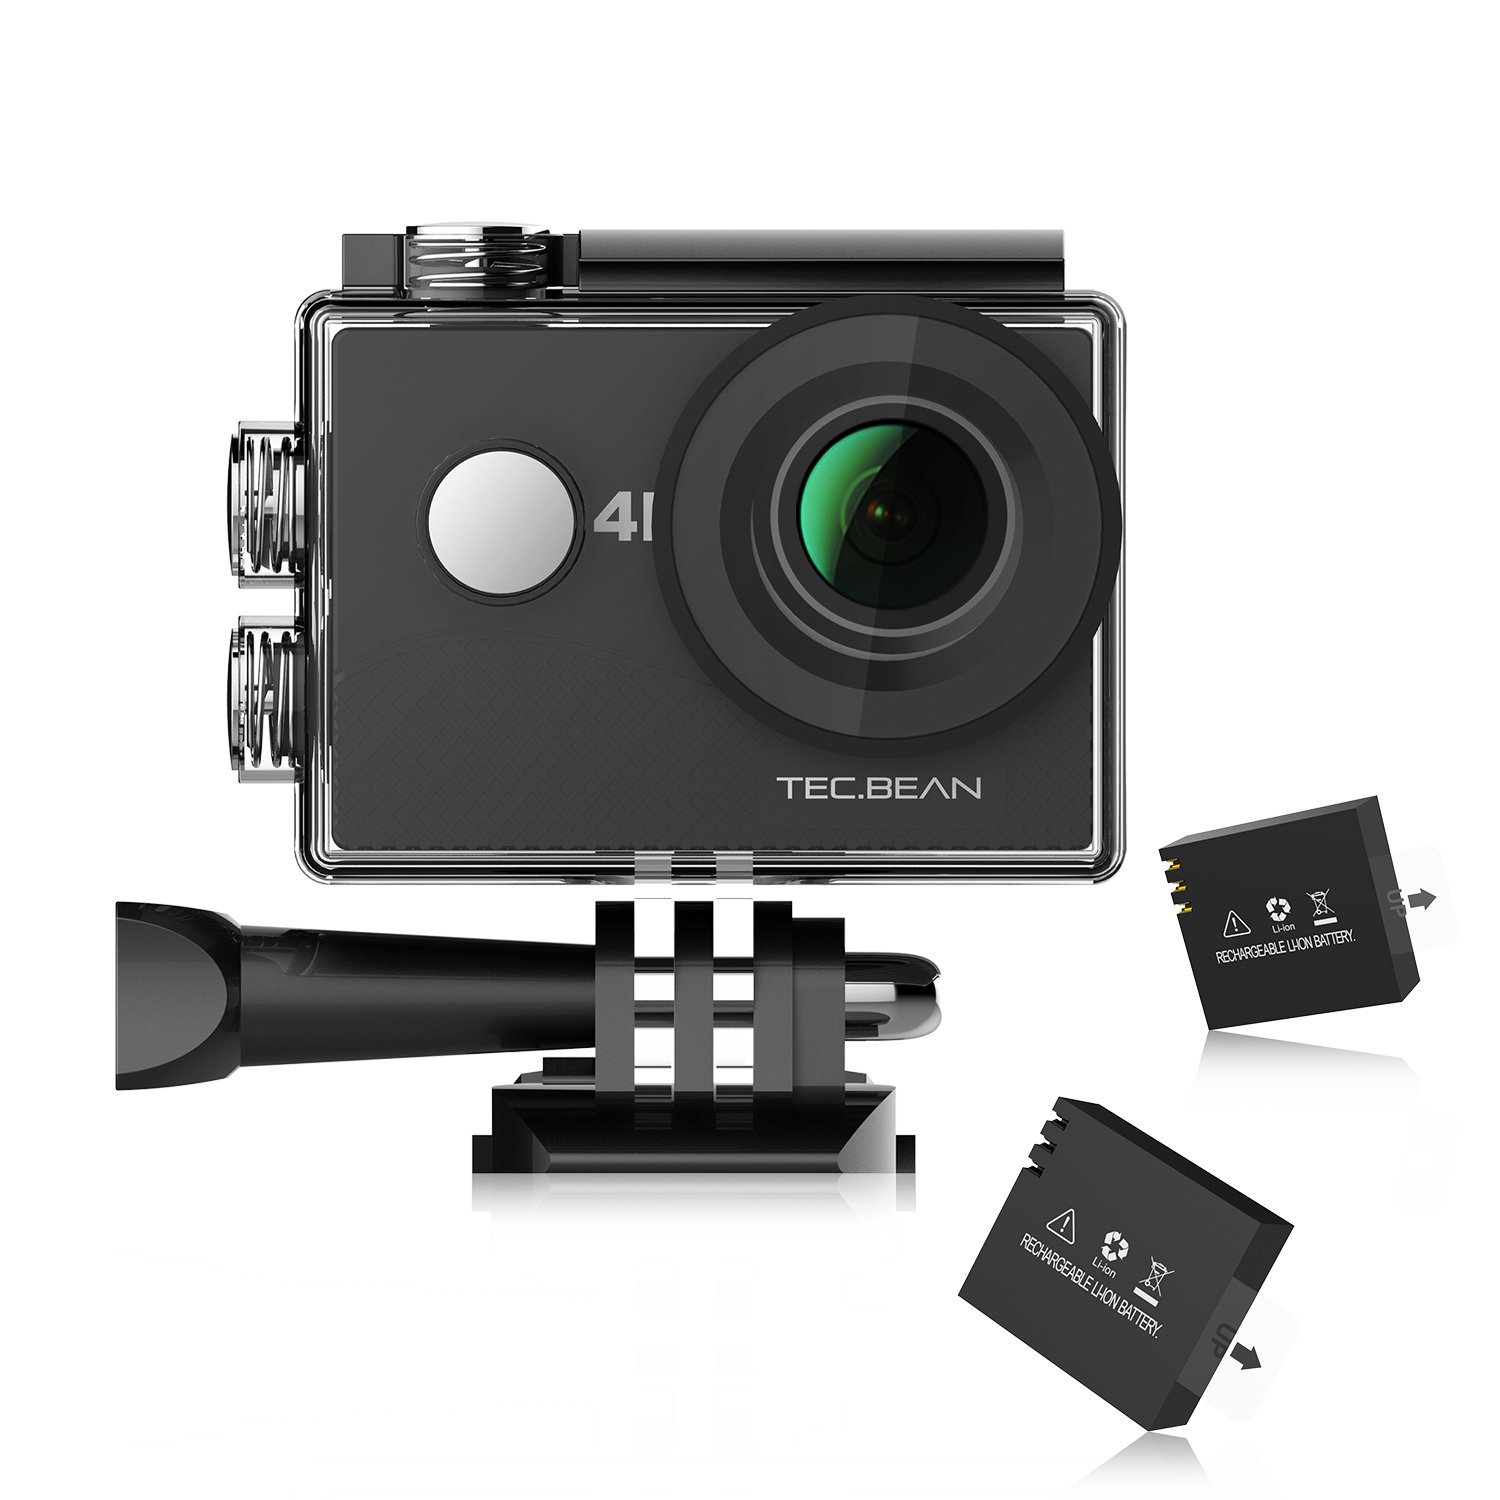 TEC.BEAN 4K Action Camera, 16MP WIFI Waterproof Camera  2inch LCD Sports Camera 170° Wide-Angle Lens Action Cam, 2pcs Rechargeable battery and Accessories Kits (Black)